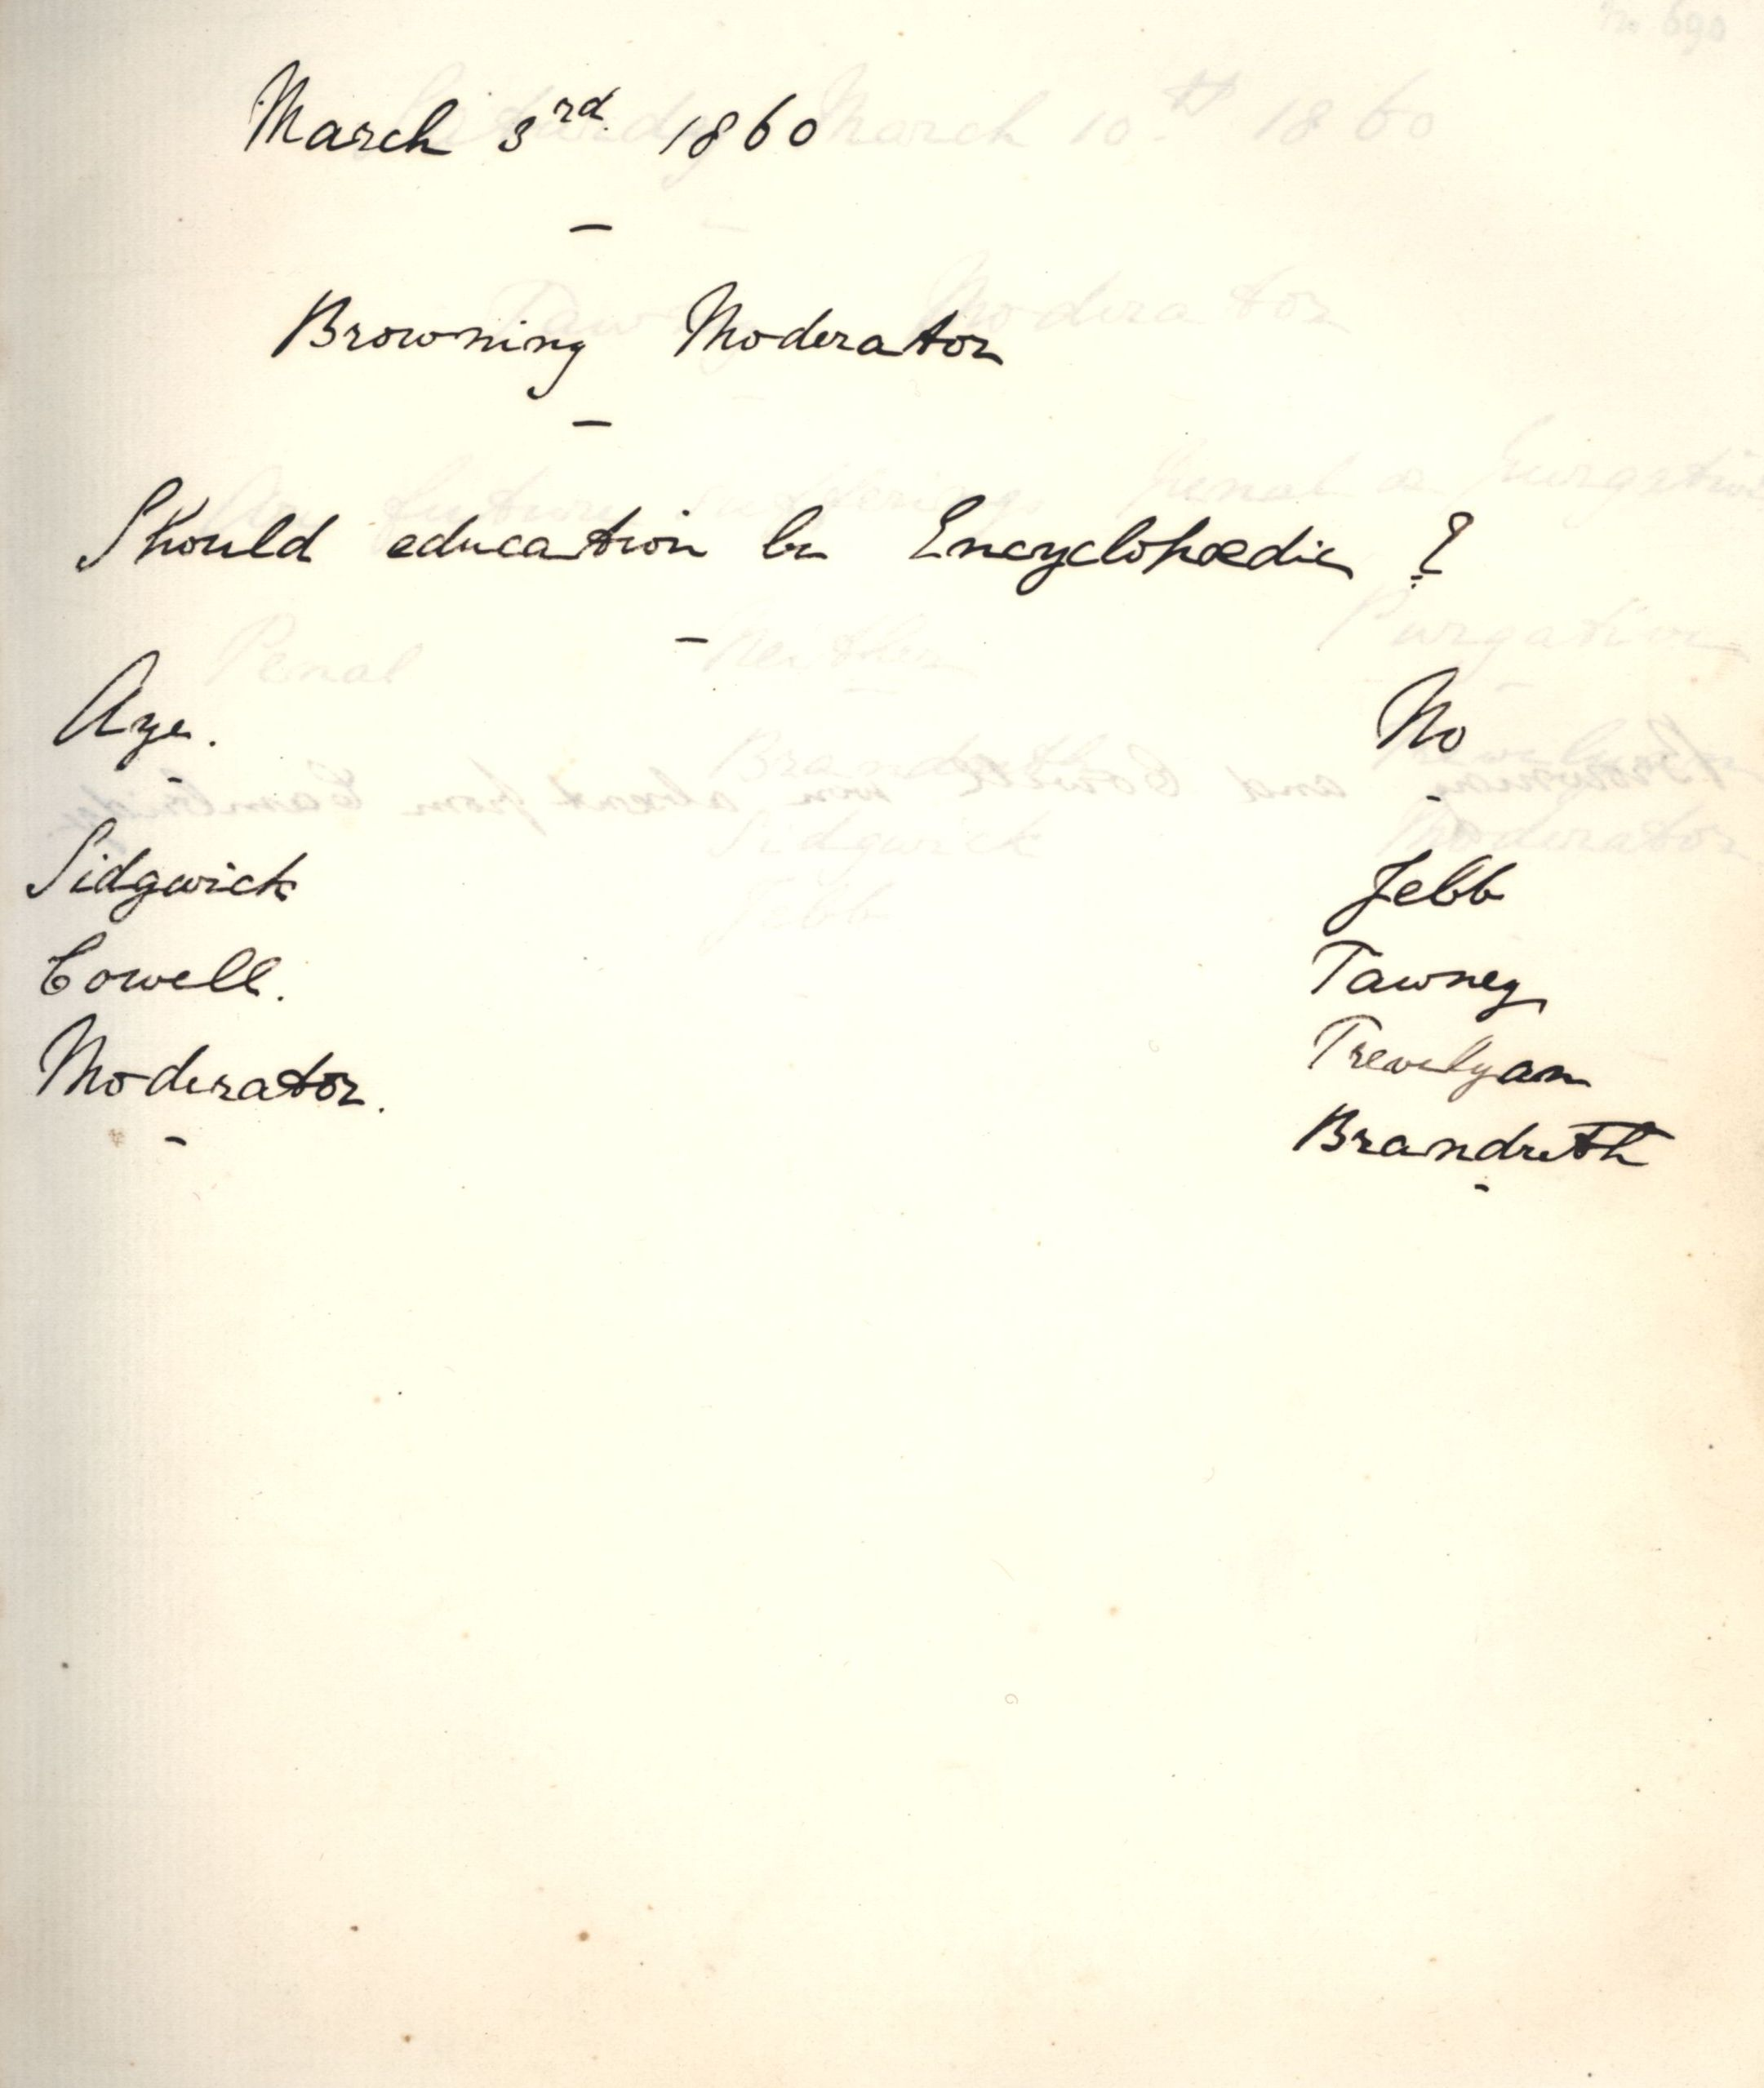 Minutes of a meeting in which Oscar Browning asked 'Should education be Encyclopaedic?' [KCAS/39/1/5, 3 March 1860]